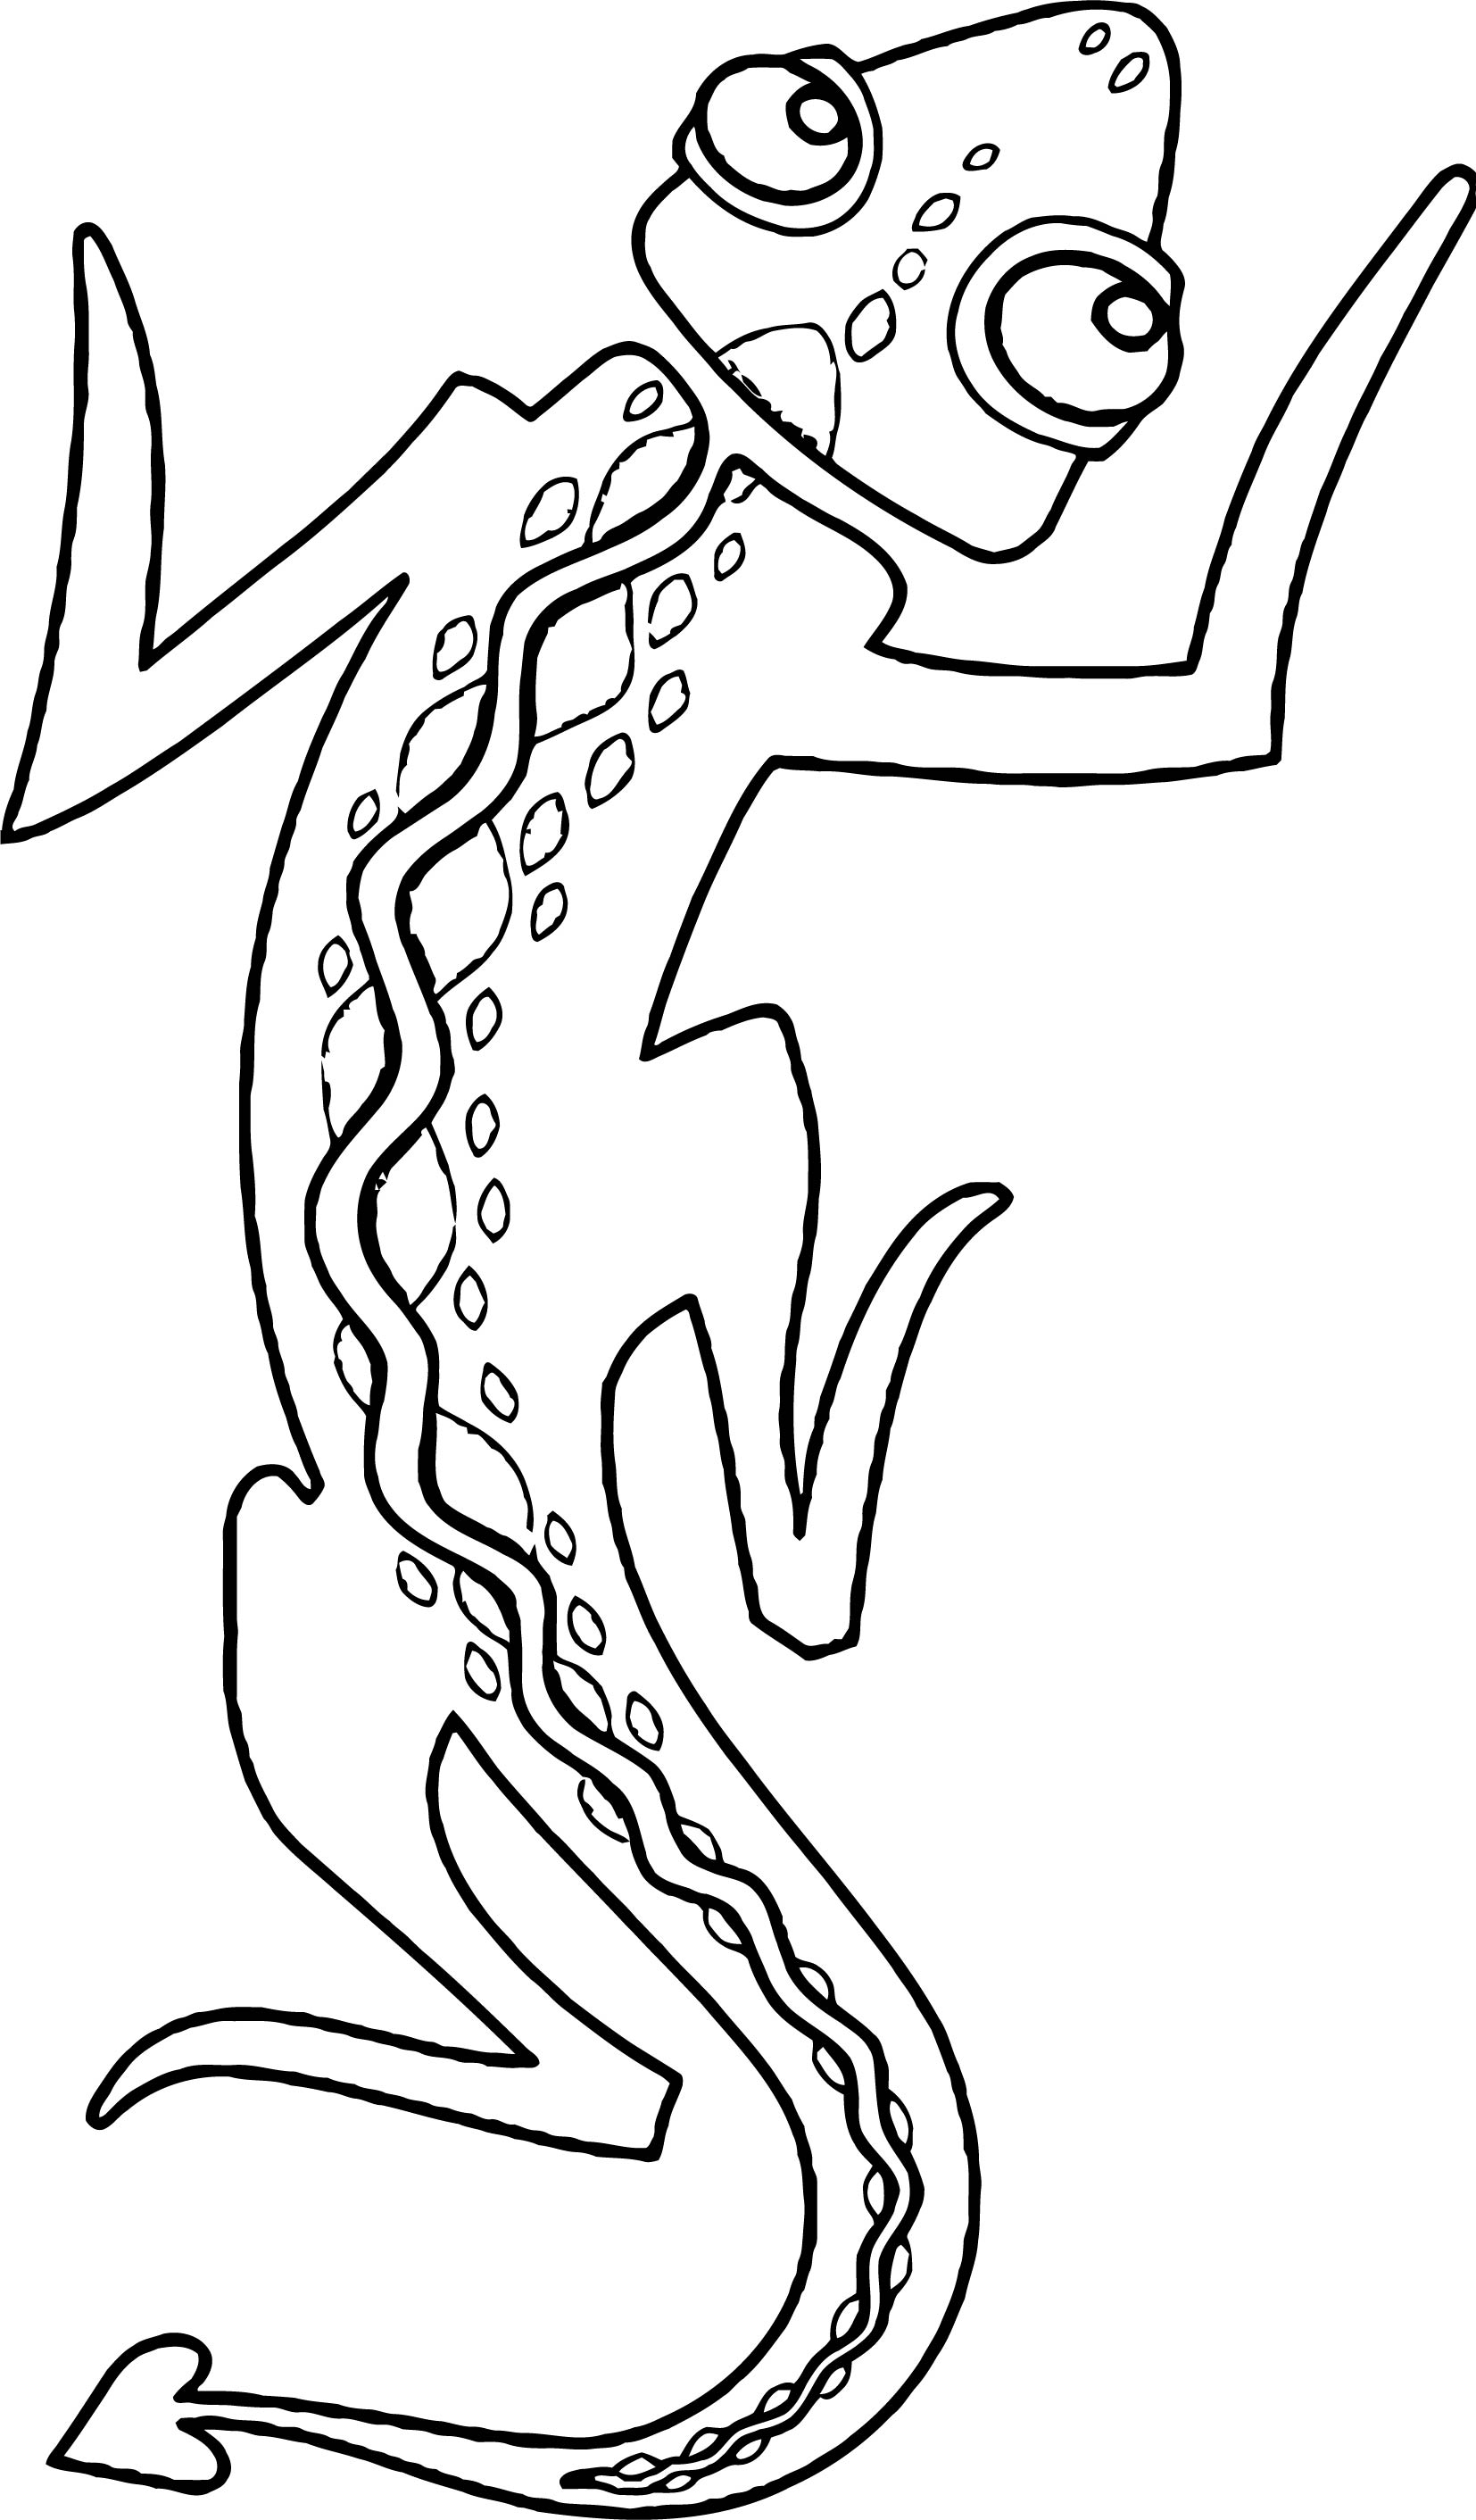 Lizard Coloring Page 29